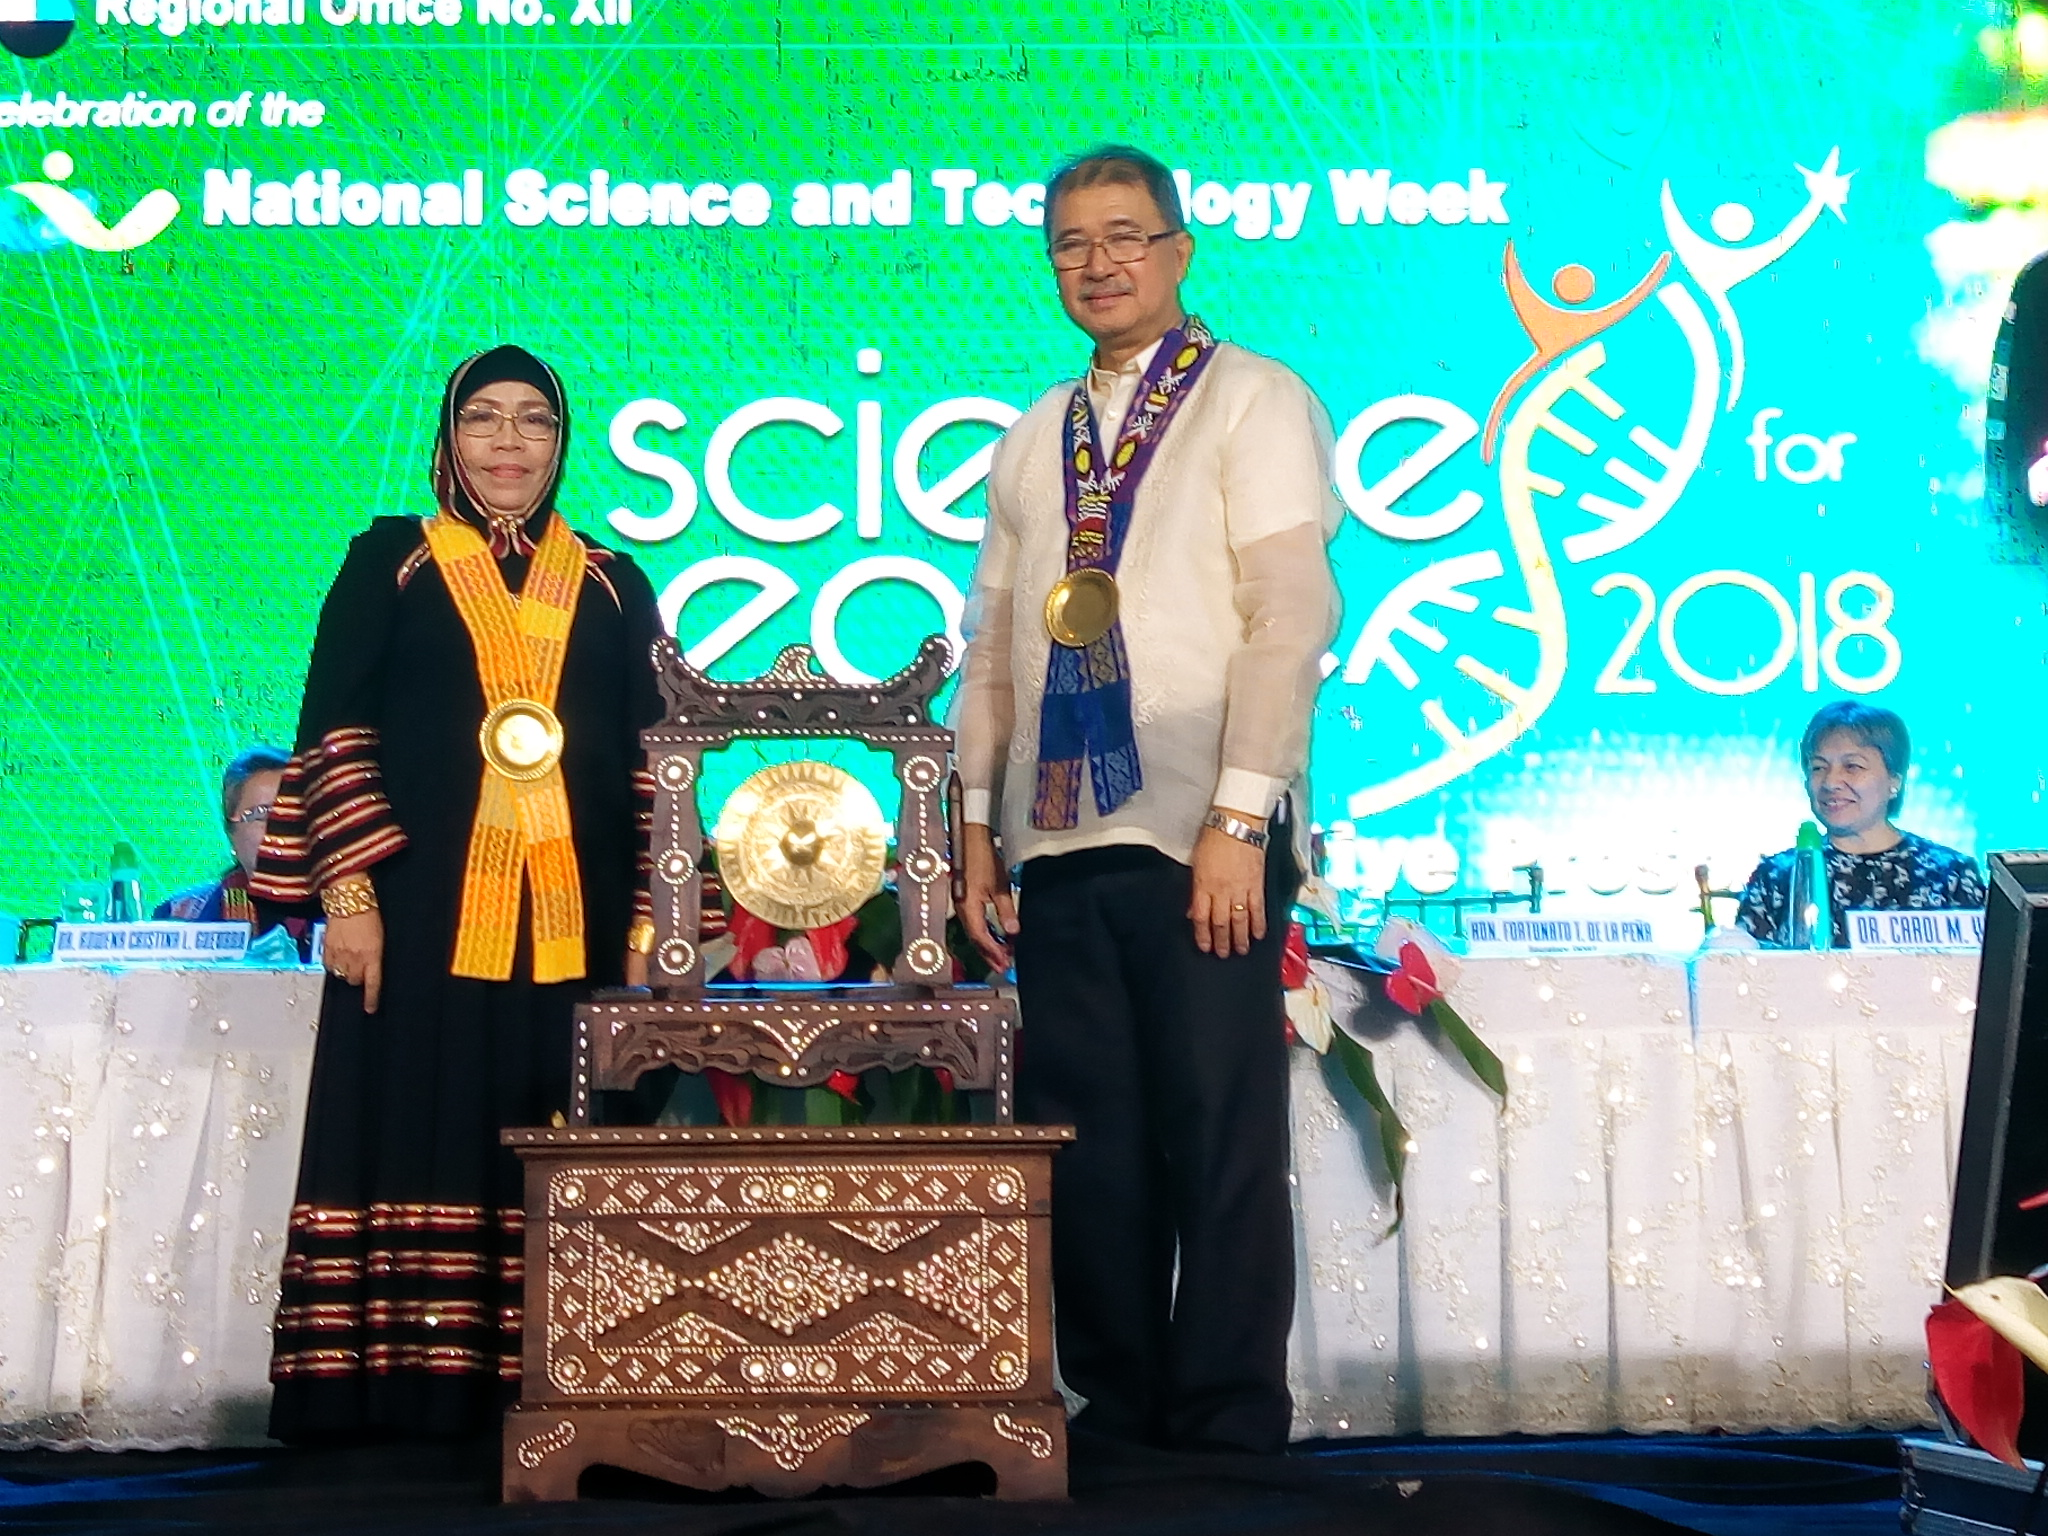 DOST-SOCCSKSARGEN - Science and Digital News